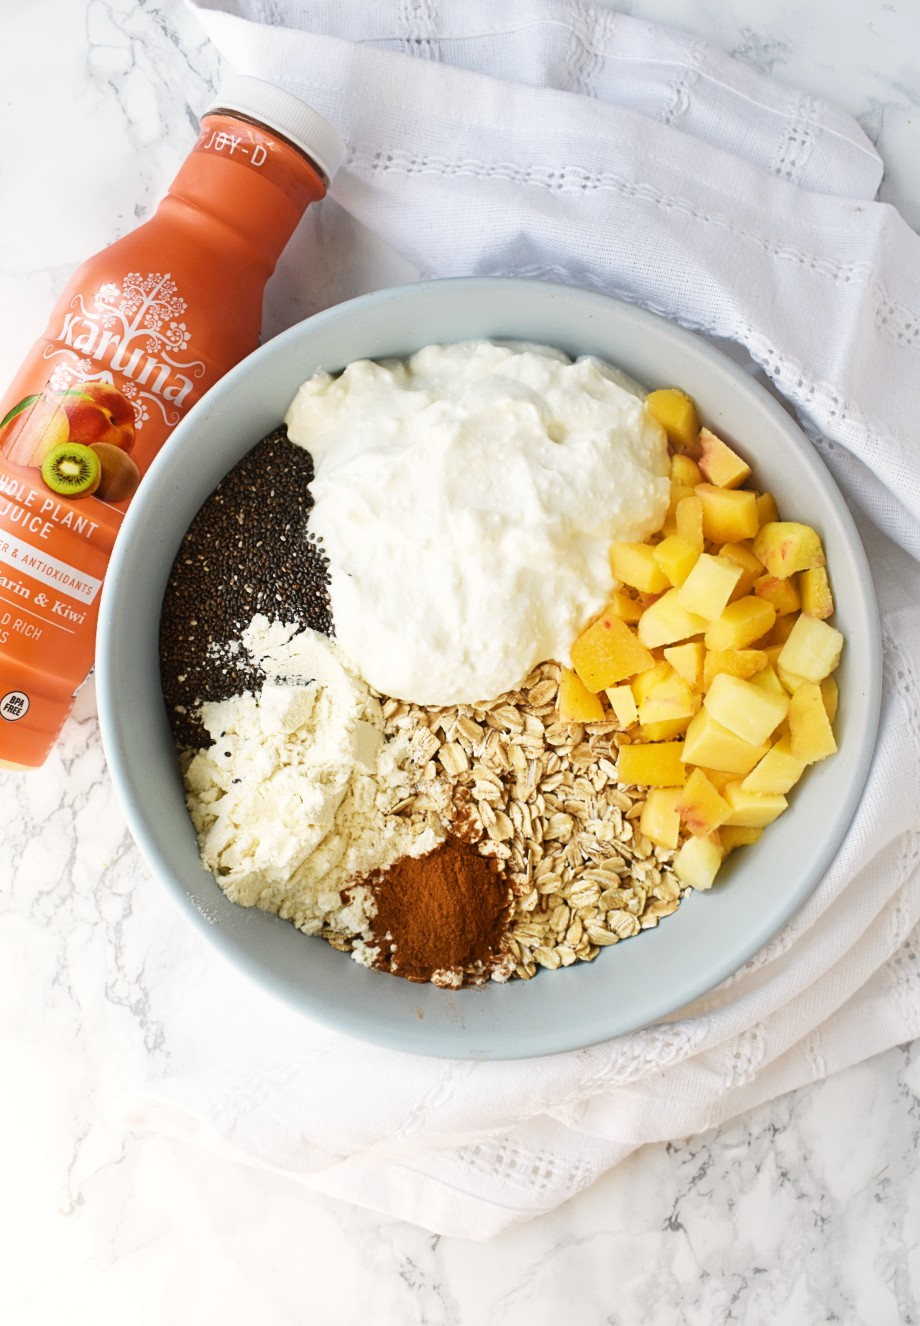 Ingredients for Peaches and Cream Overnight Oats